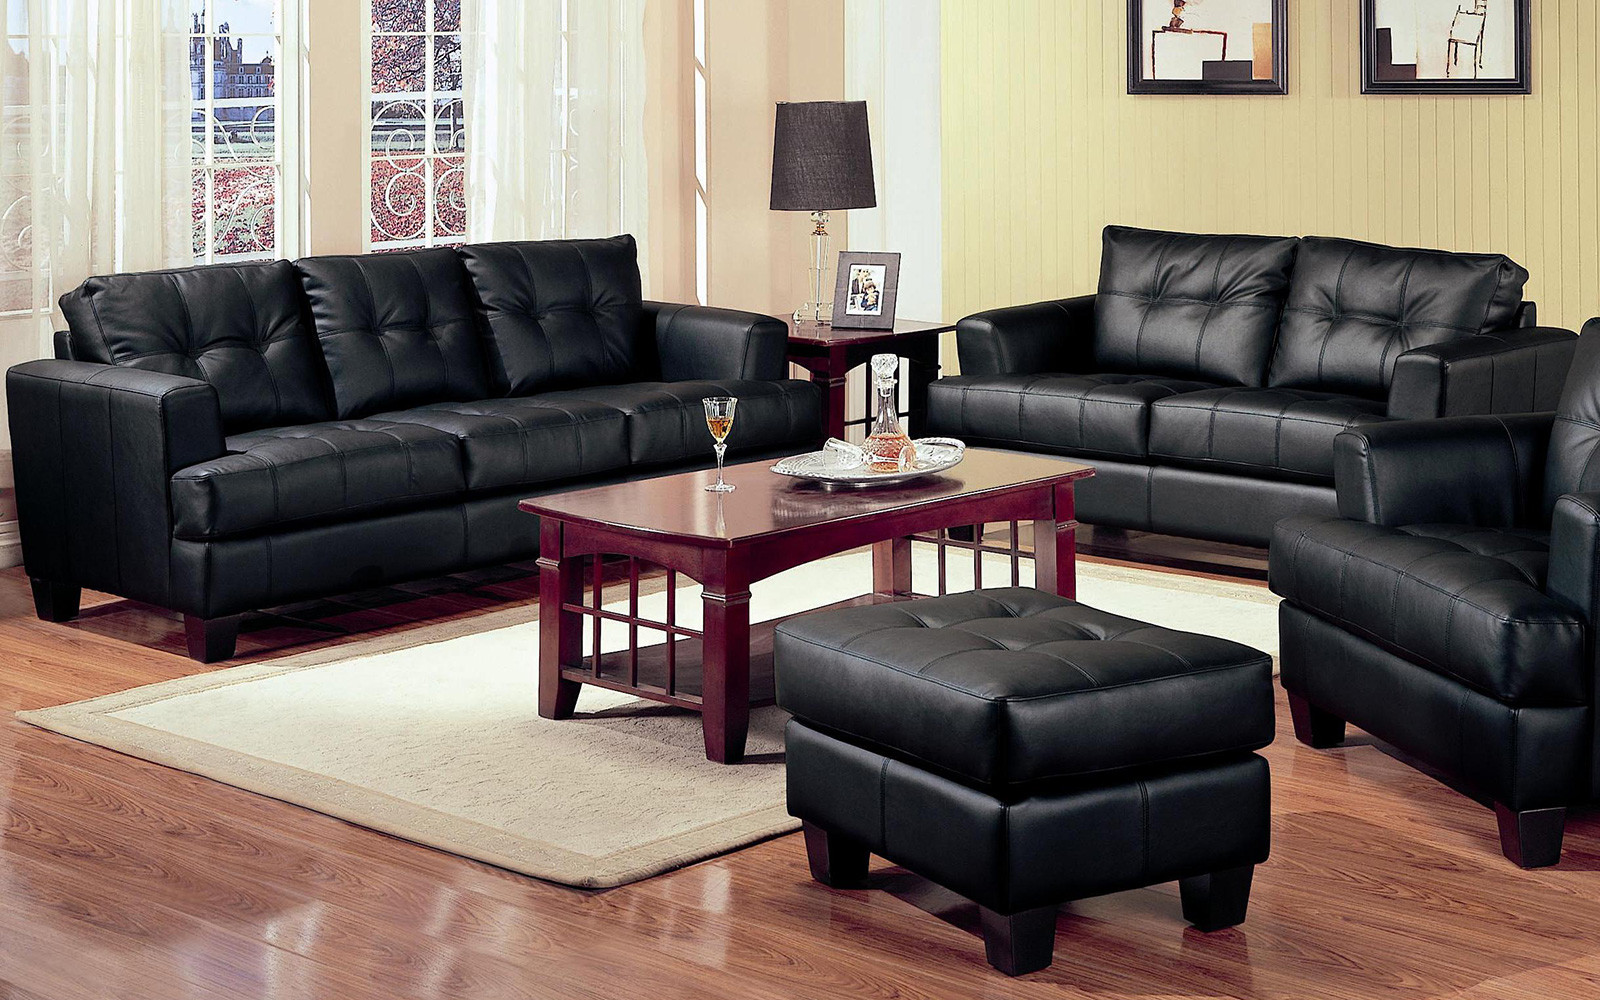 Beau 2 Piece Modern Black Bonded Leather Sofa And Loveseat Livingroom Set    Walmart.com